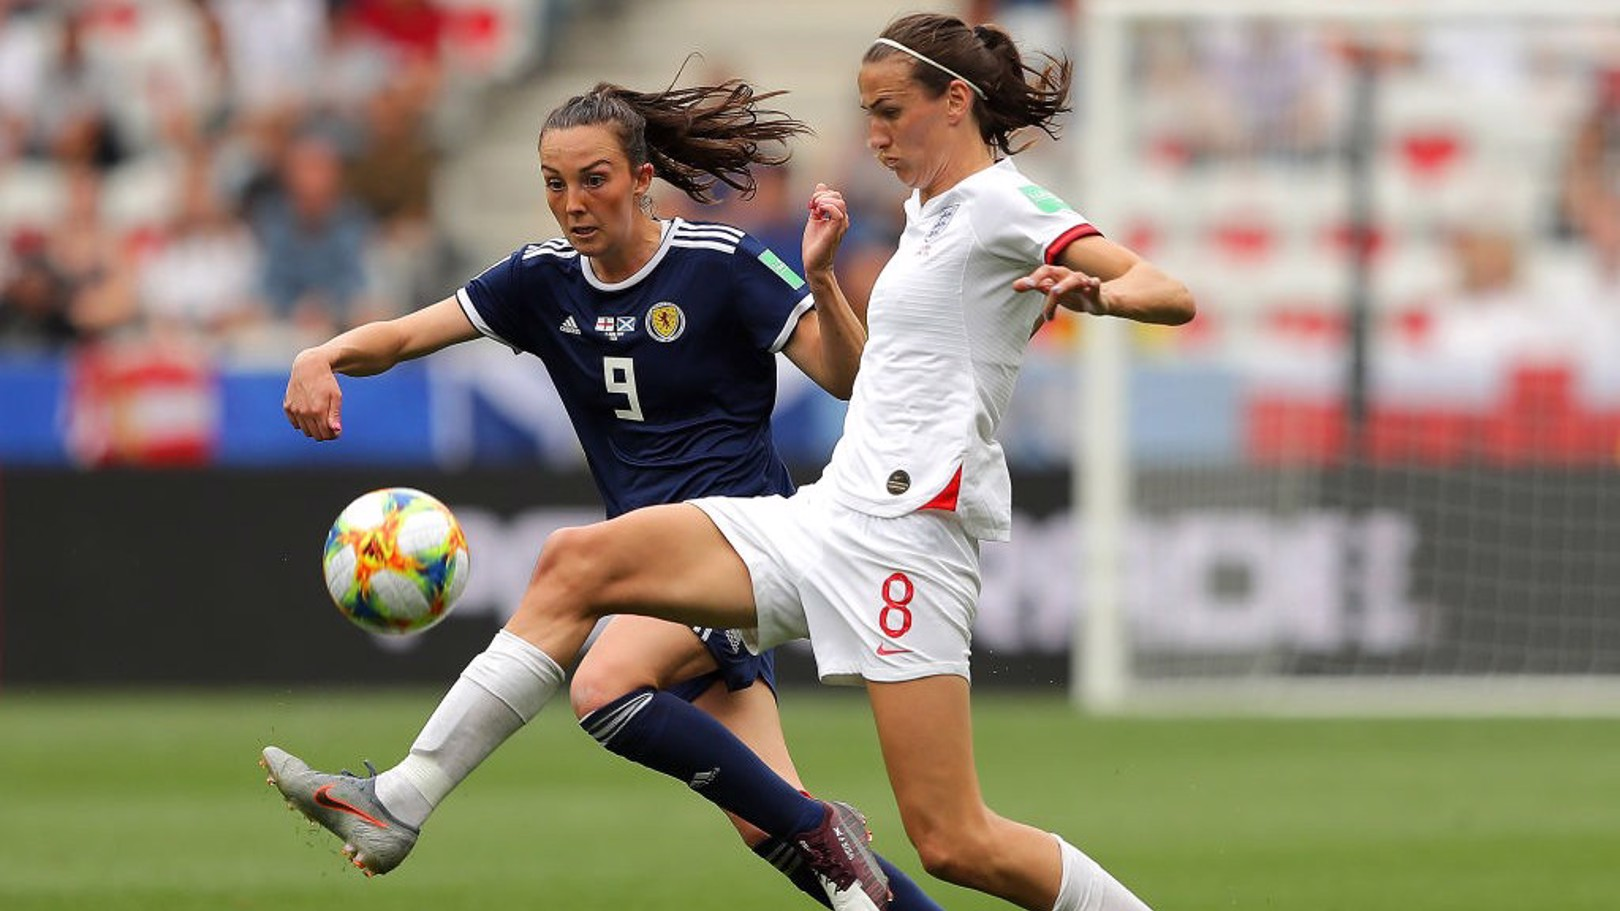 SHOWDOWN: England and Scotland face important games in their final group matches